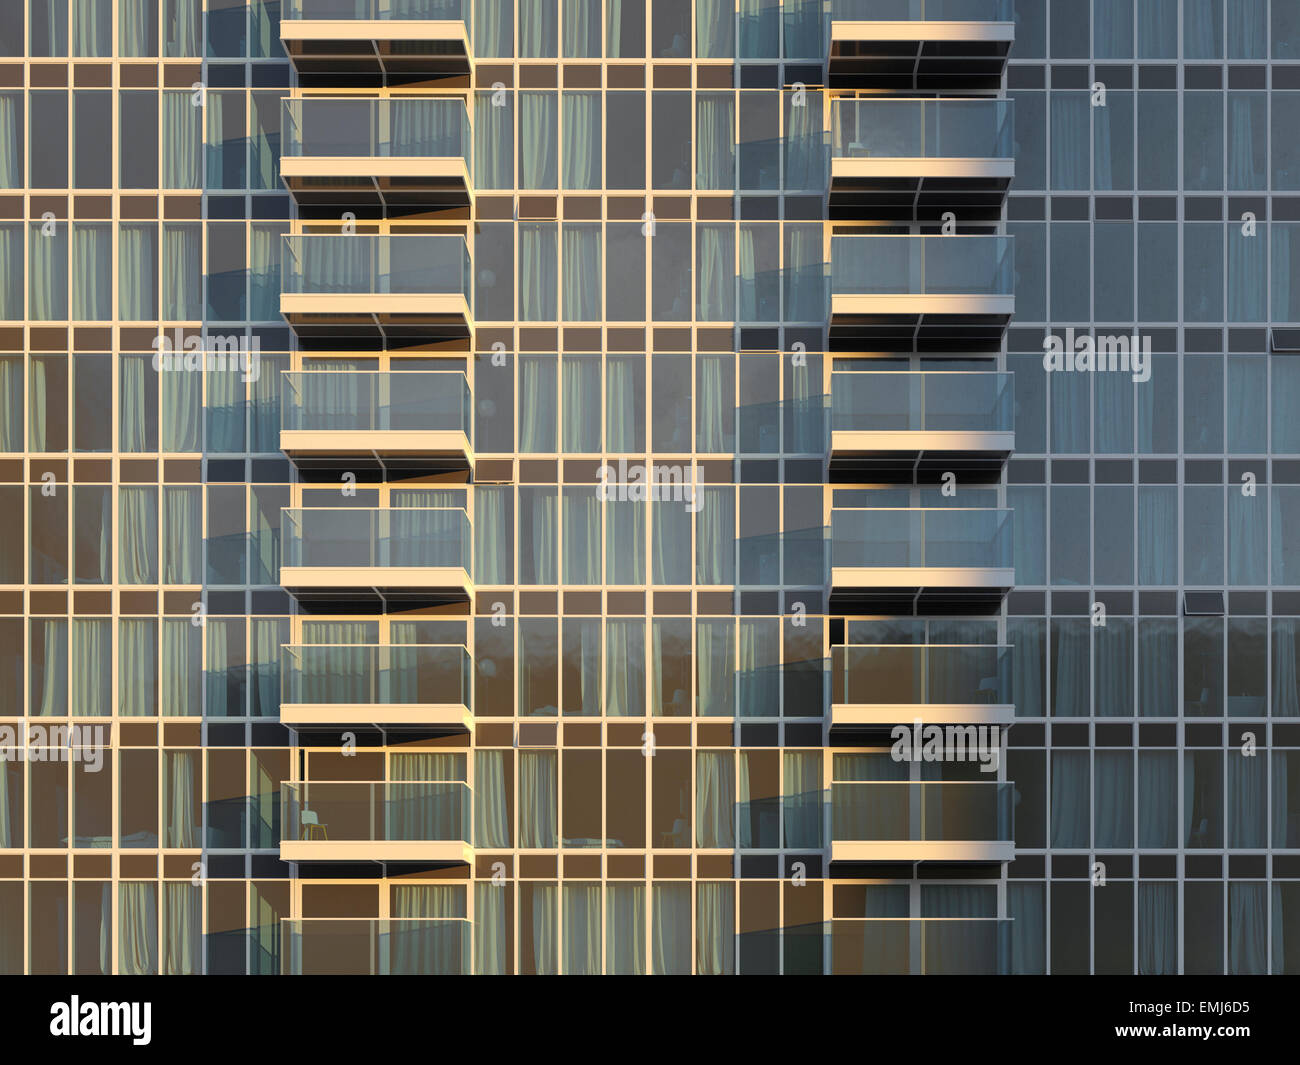 CGI Apartment closeup - Stock Image